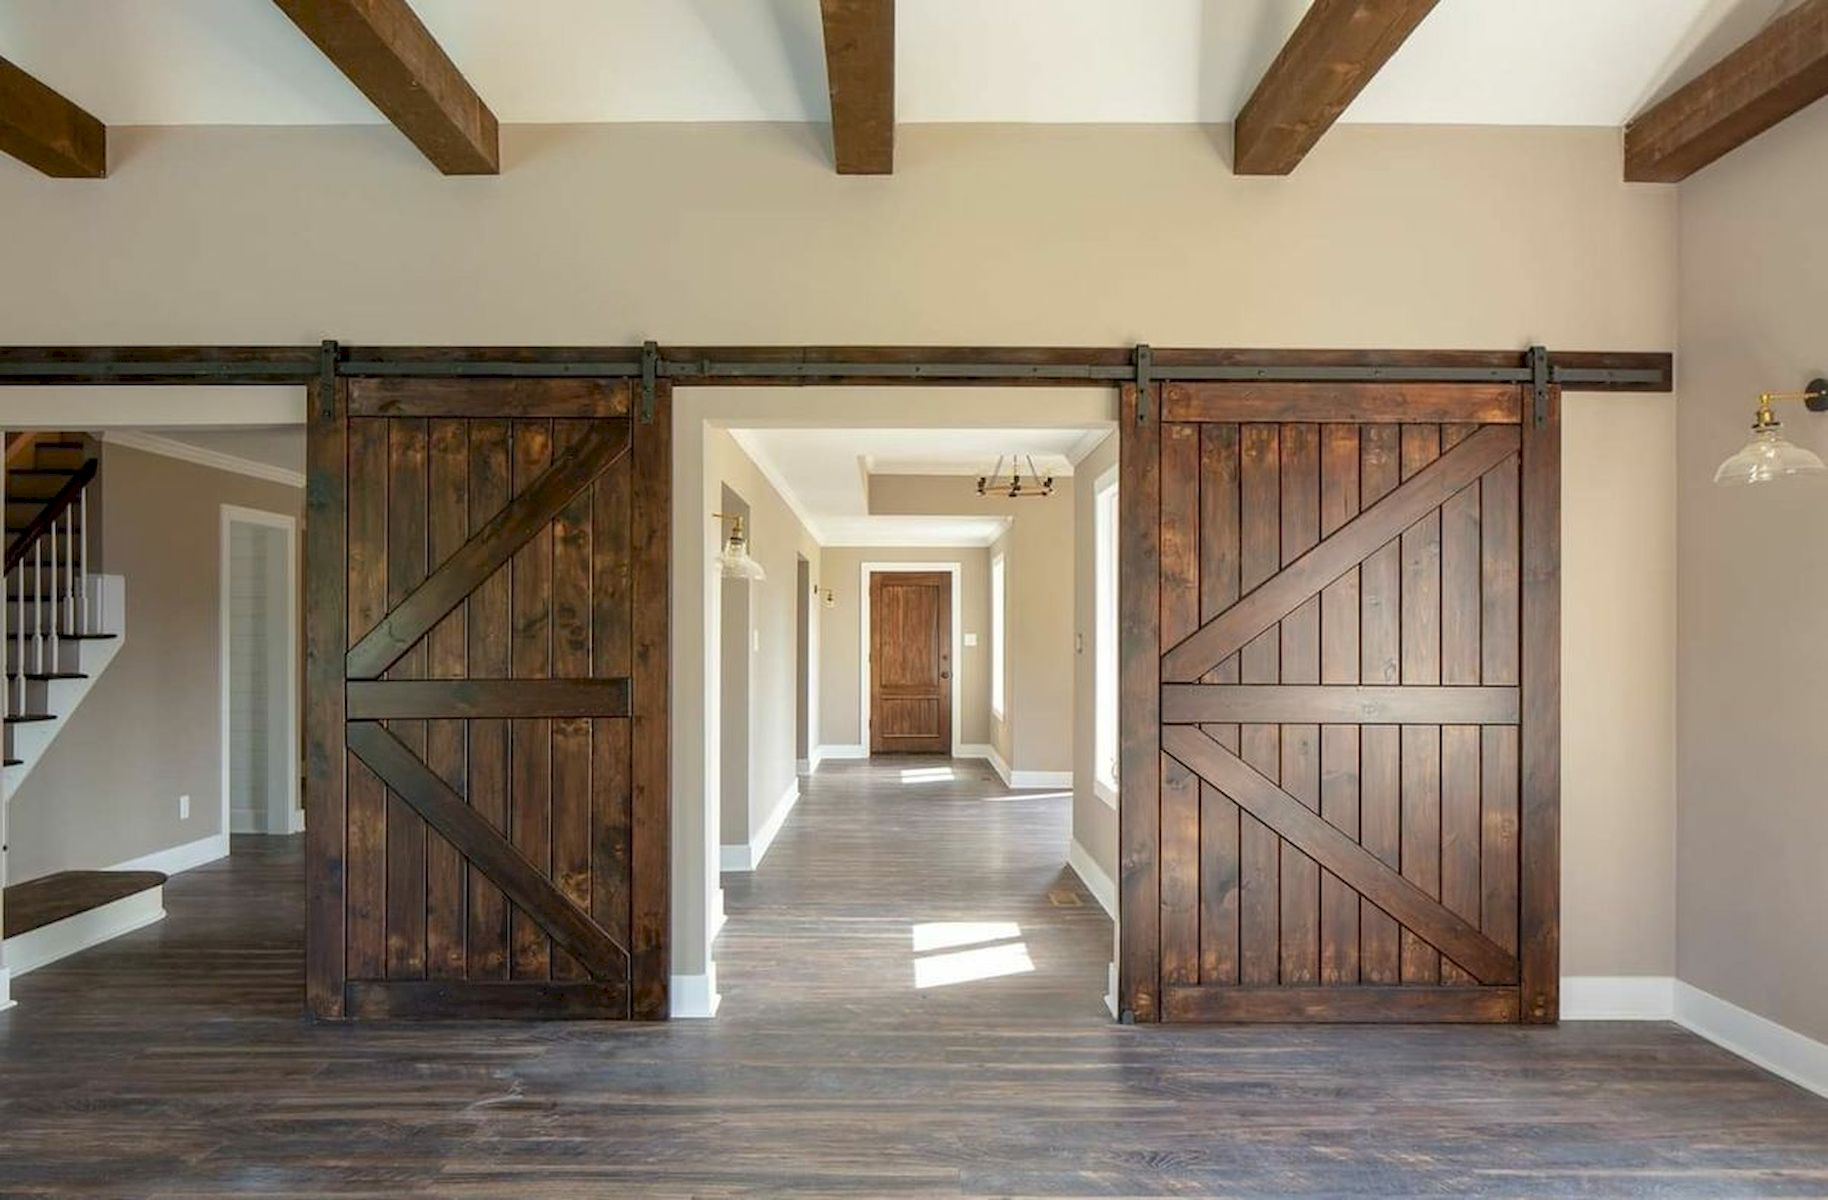 70 Rustic Home Decor Ideas for Doors and Windows (47)